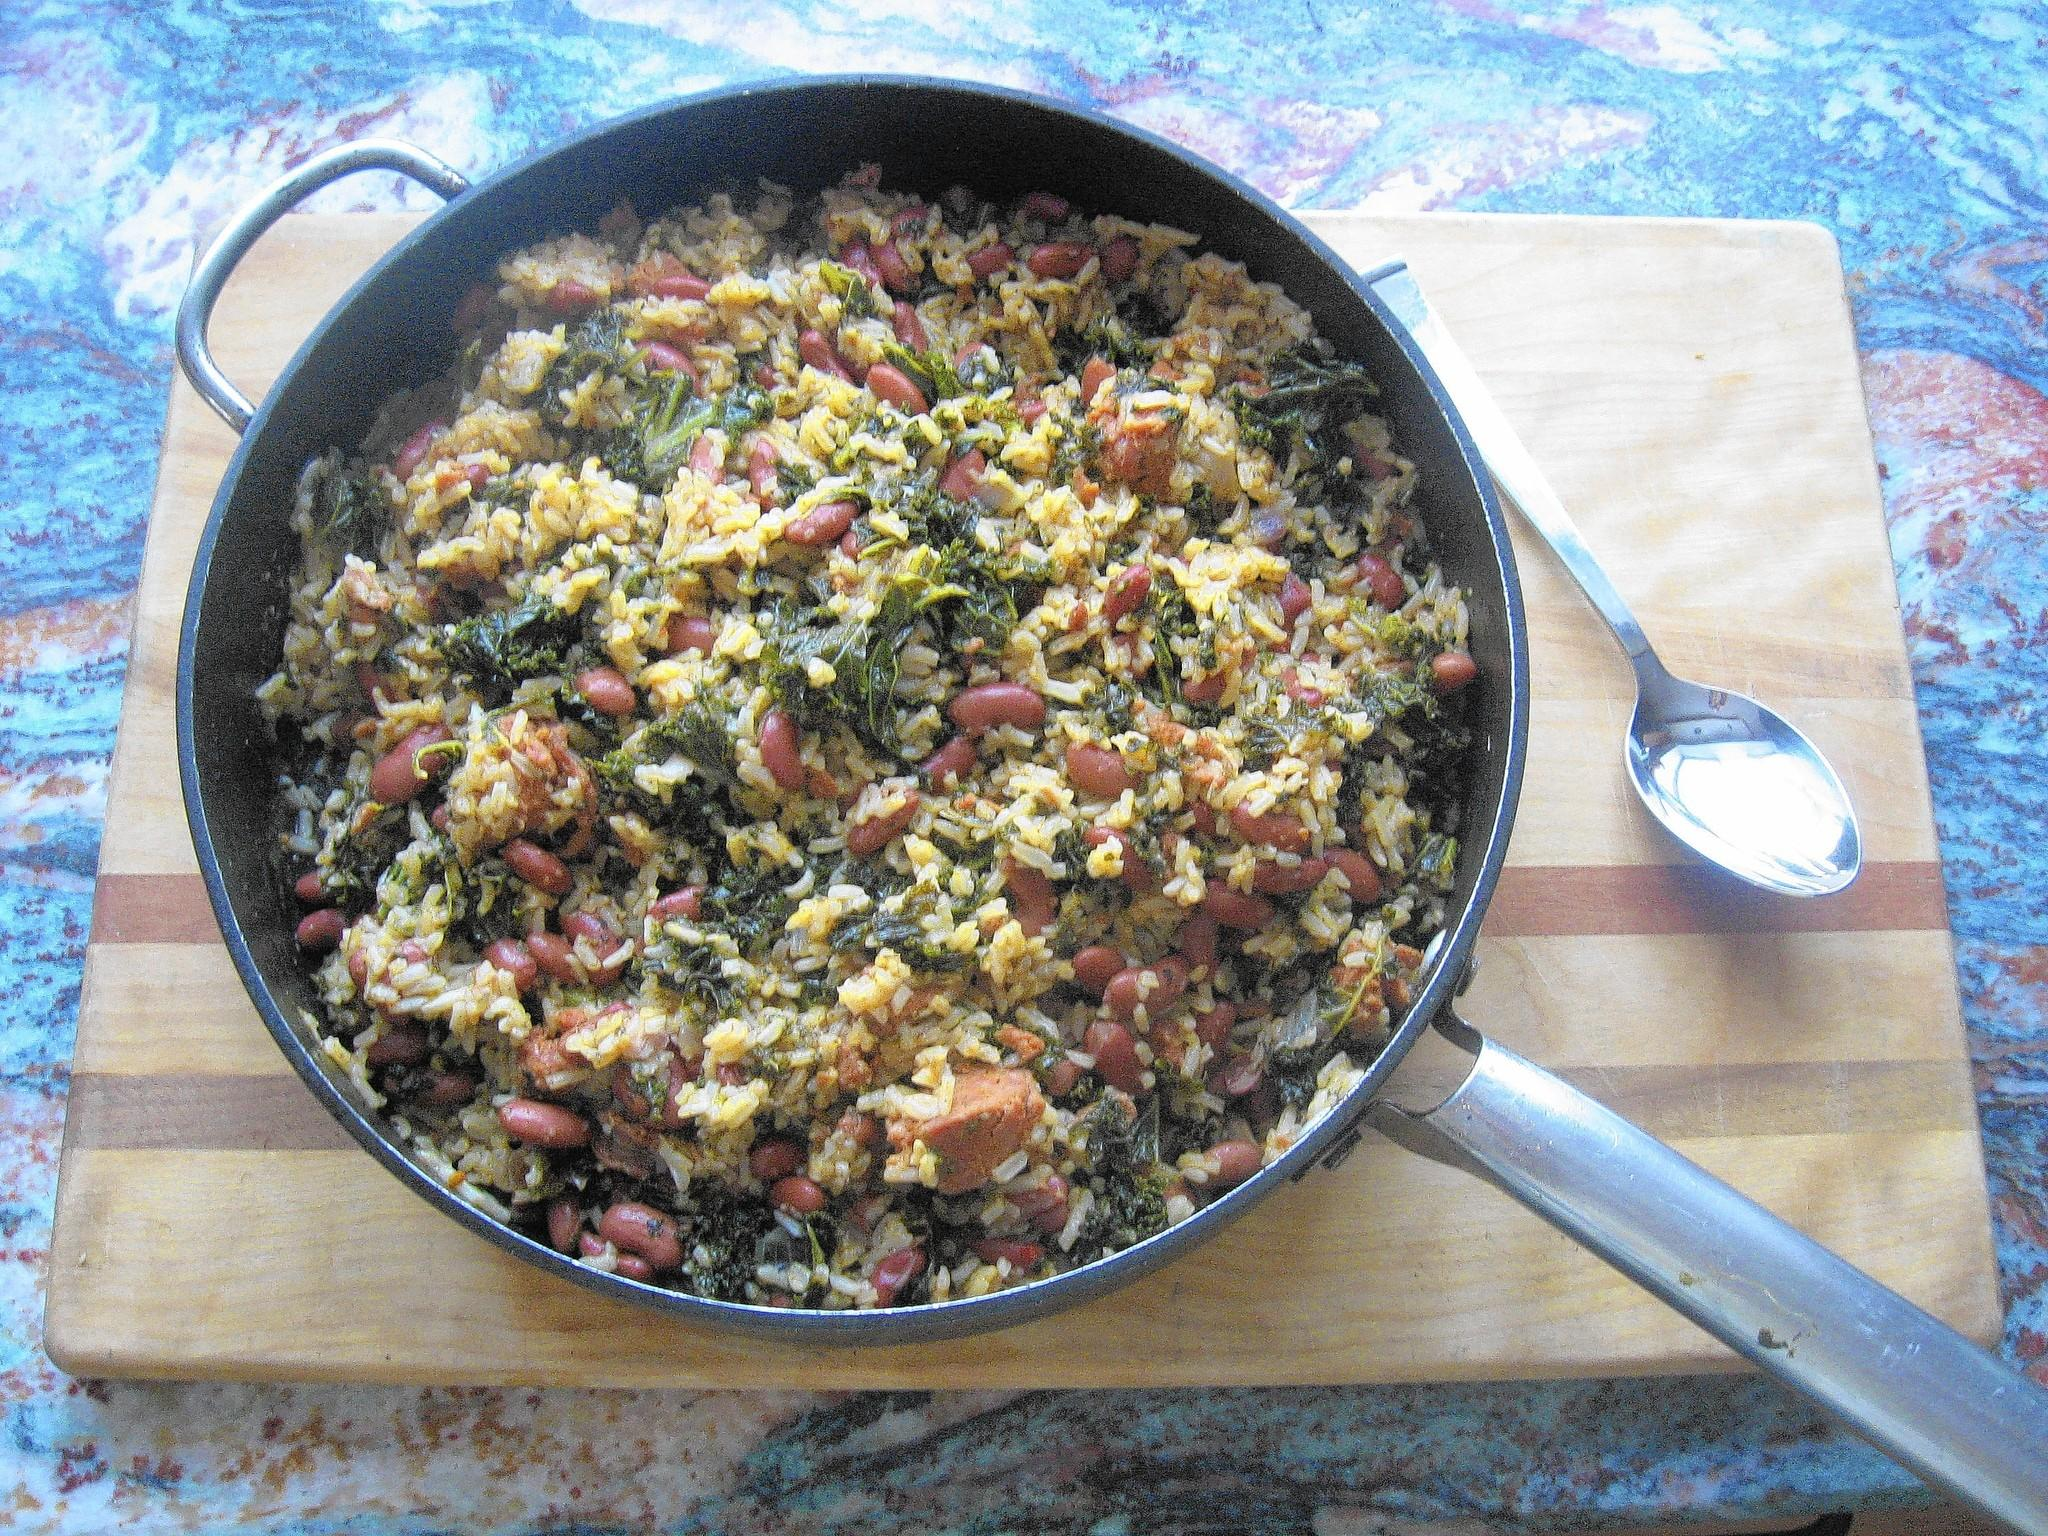 This rice, beans and kale dish borrows staples such as canned beans and rice from the pantry.